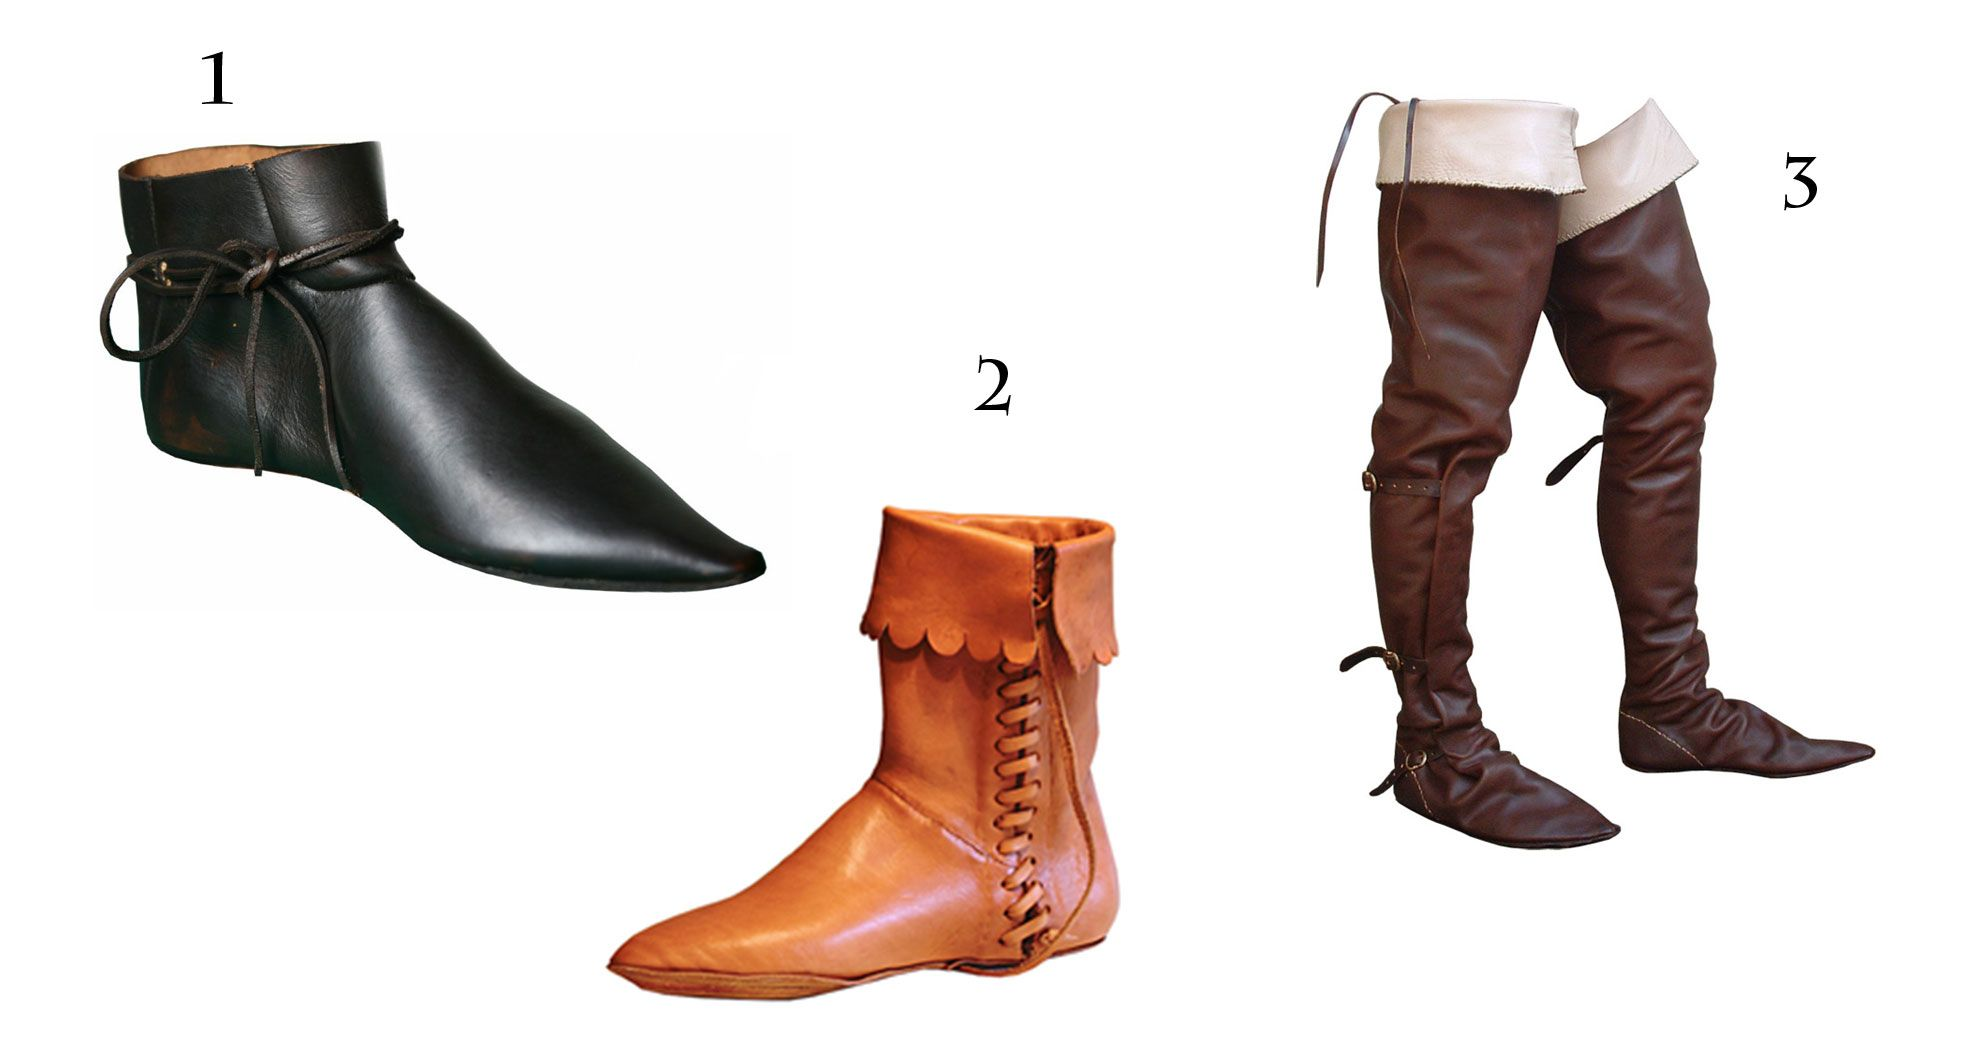 Footwear Of The Middle Ages - Google Search